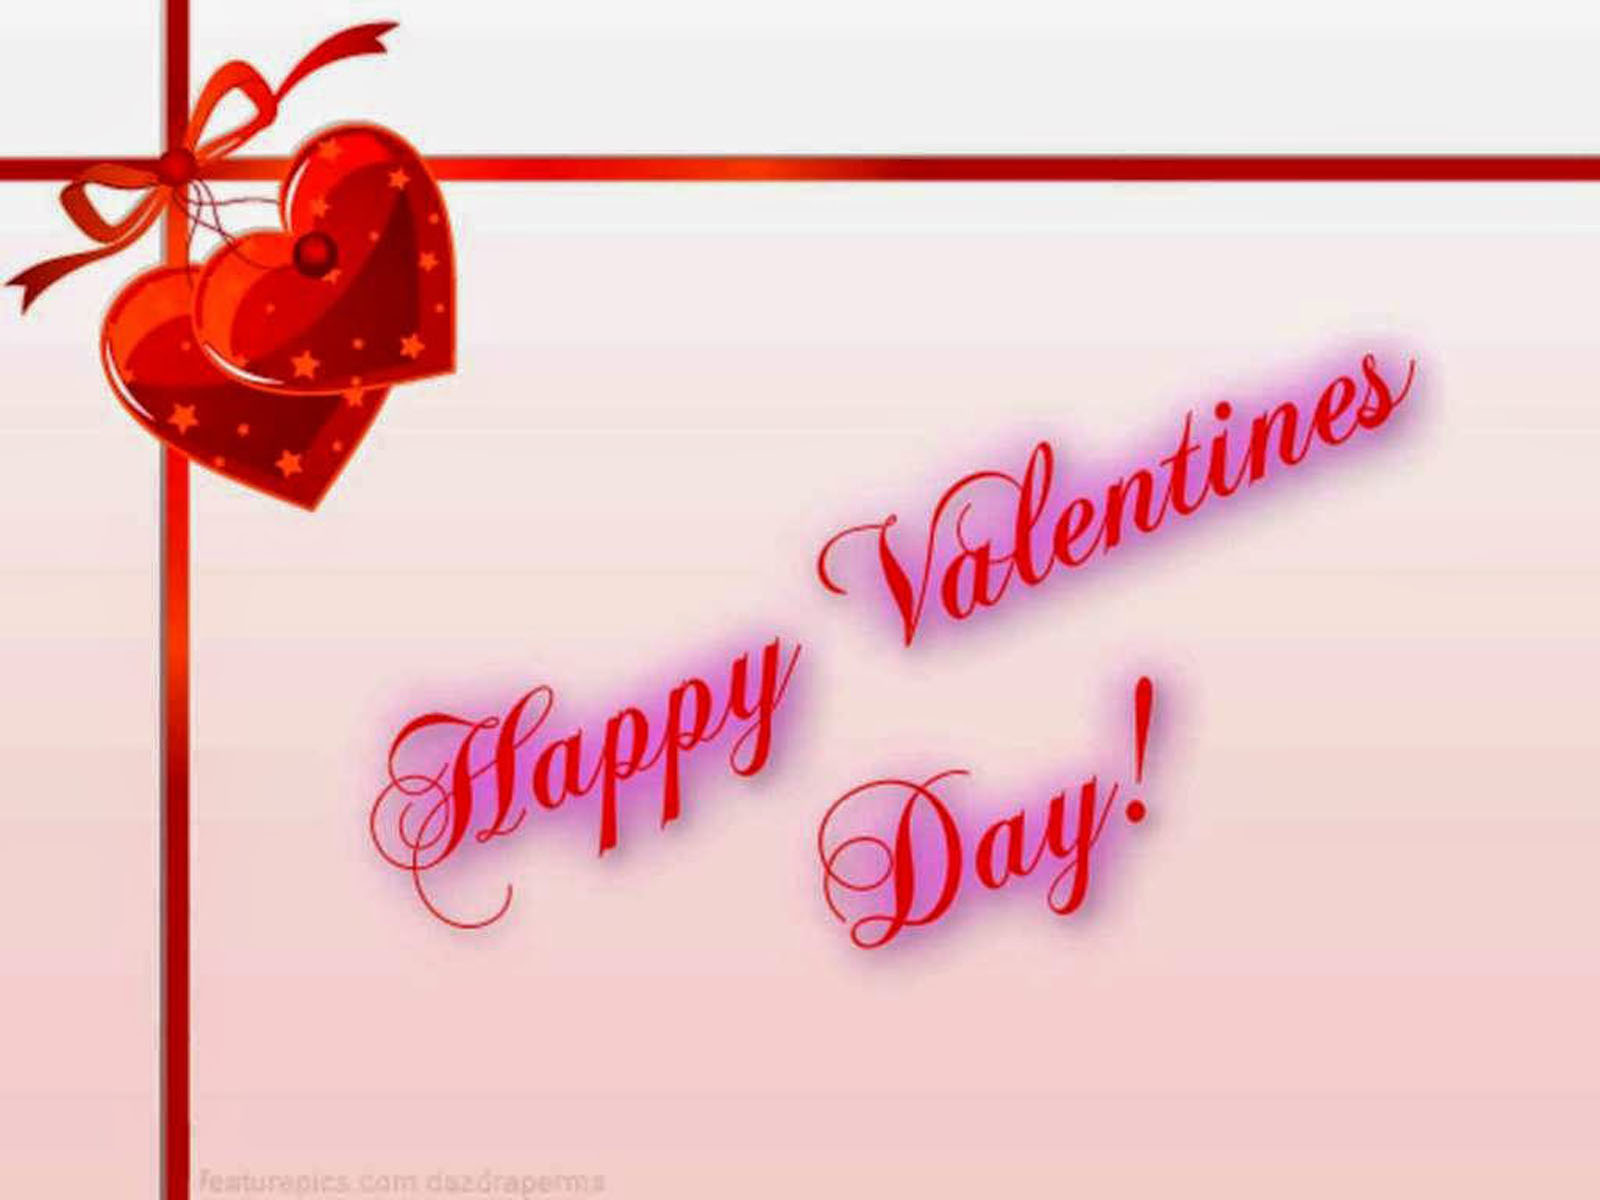 Top 15 Valentineu002639;s Day 2016 HD Wallpapers Collection Download Free  MadeGems